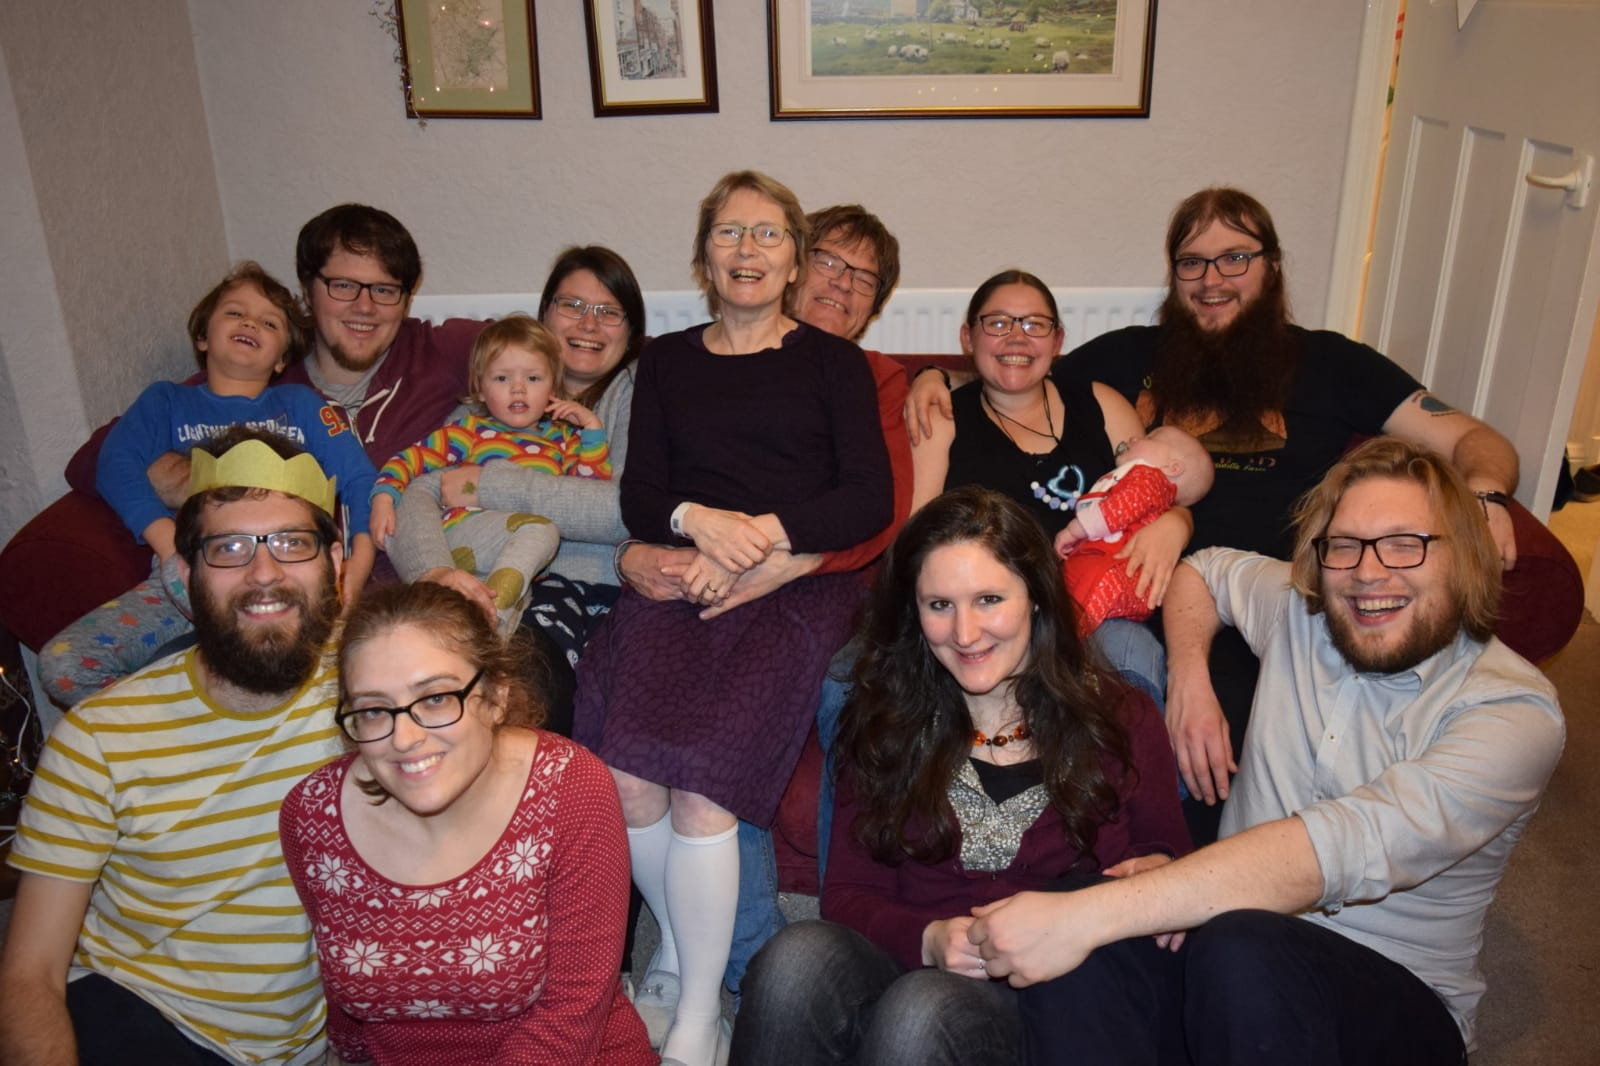 Thom with his Mum and family celebrating Christmas